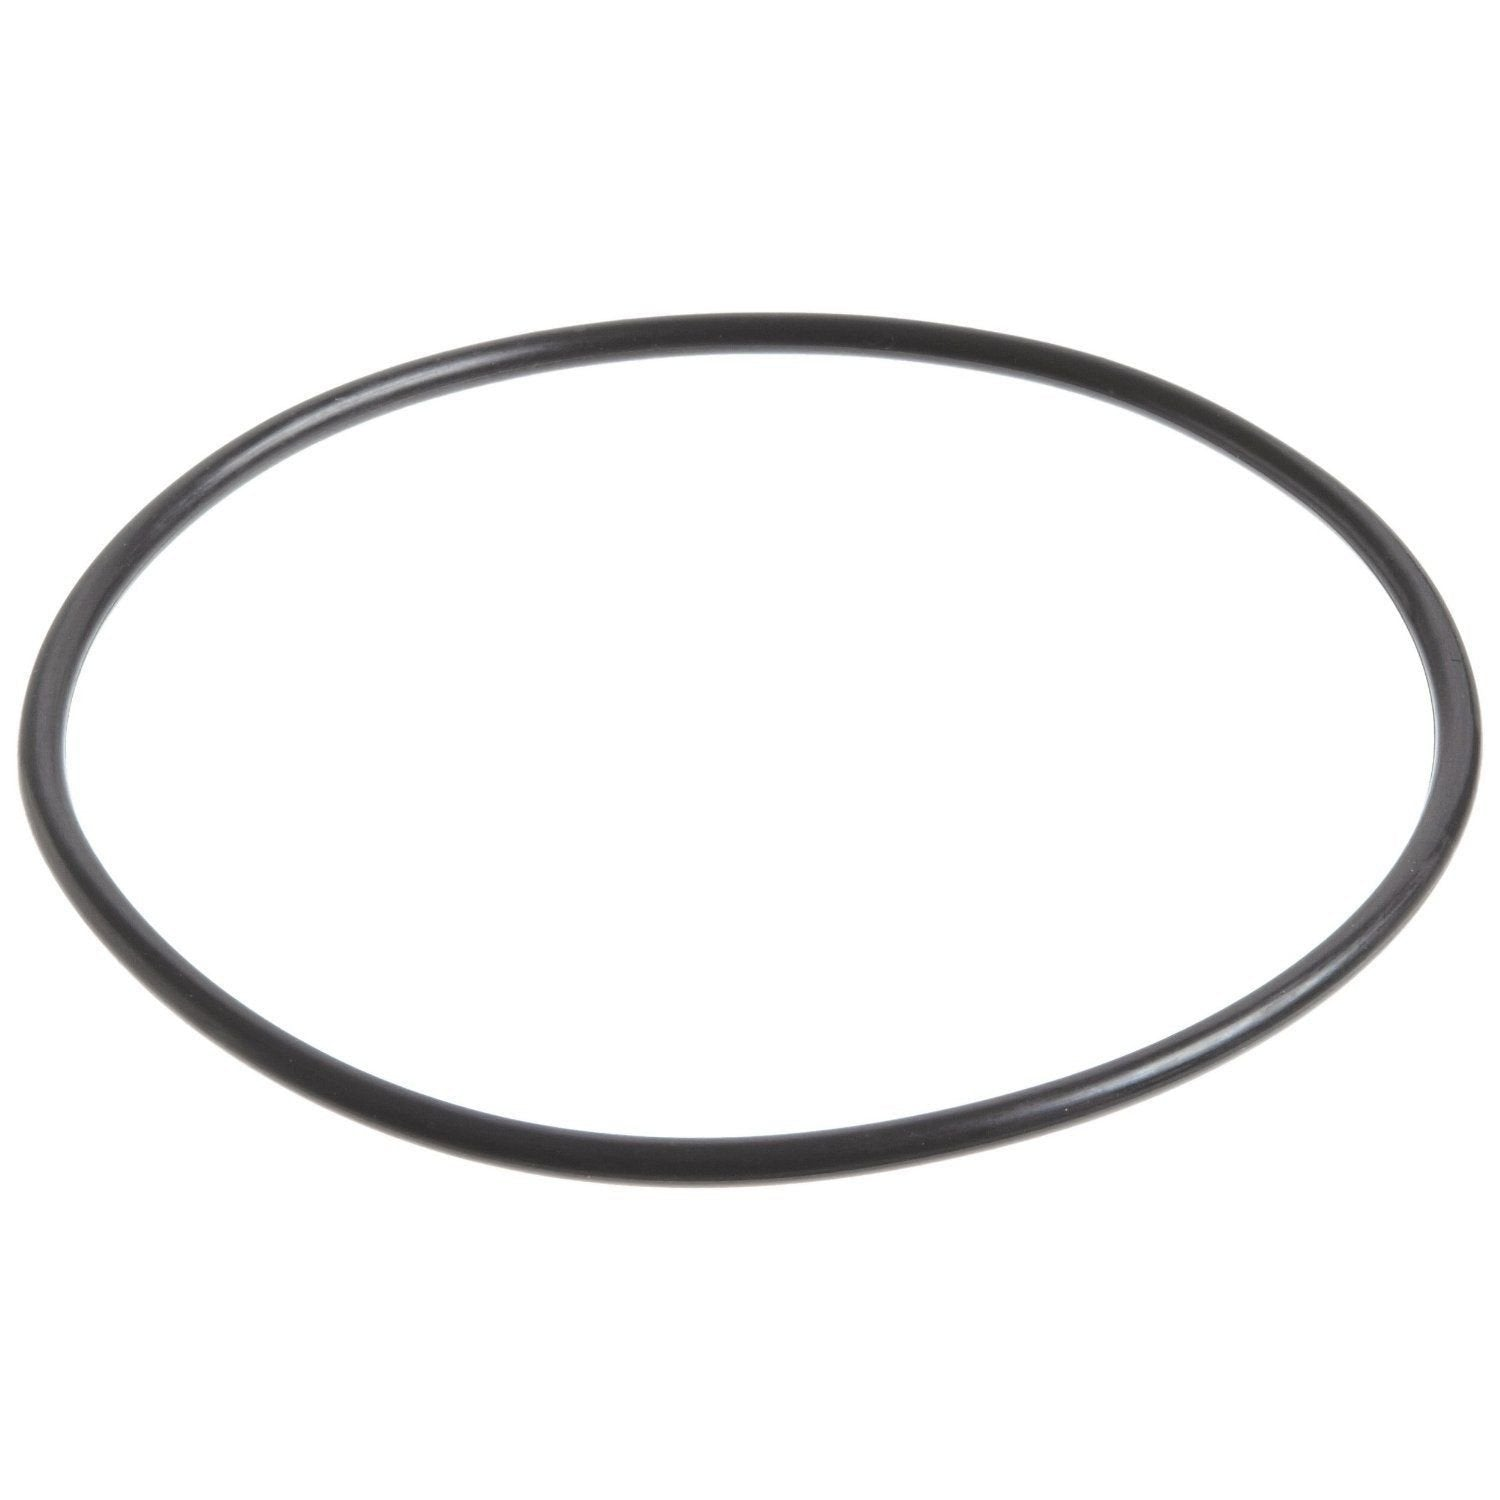 Intex 11330 Filter Housing O'ring